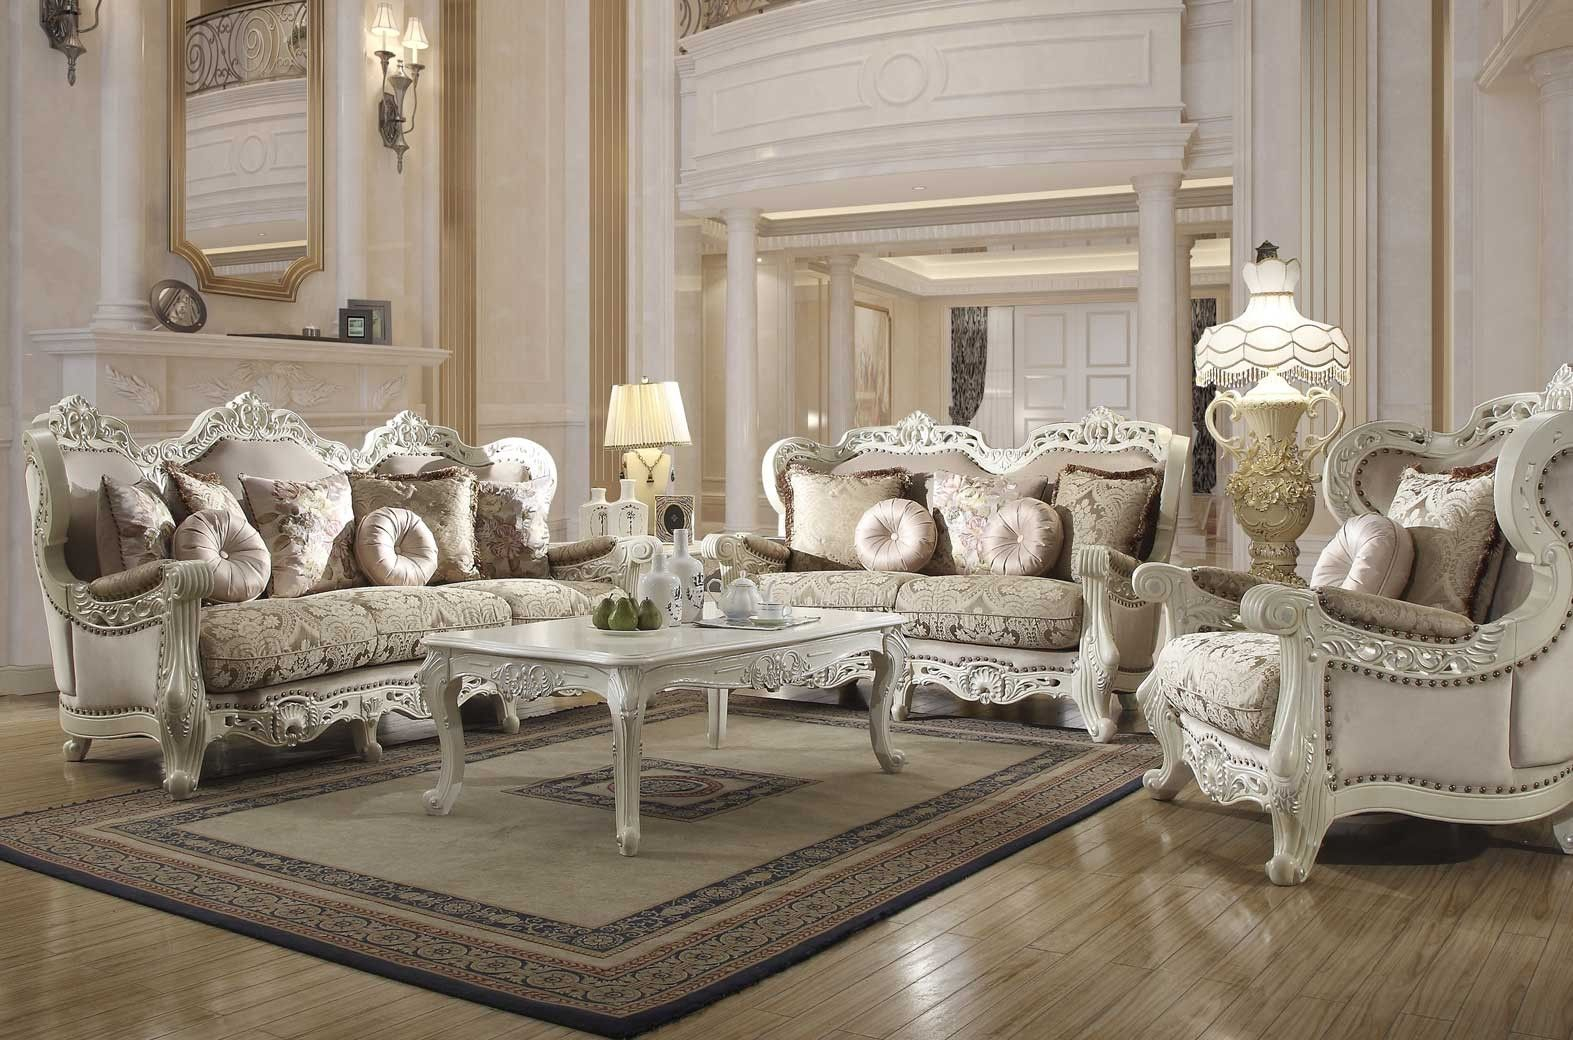 Hd 2657 Homey Design Upholstery Living Room Set Victorian European intended for 14 Clever Tricks of How to Improve Western Living Room Sets